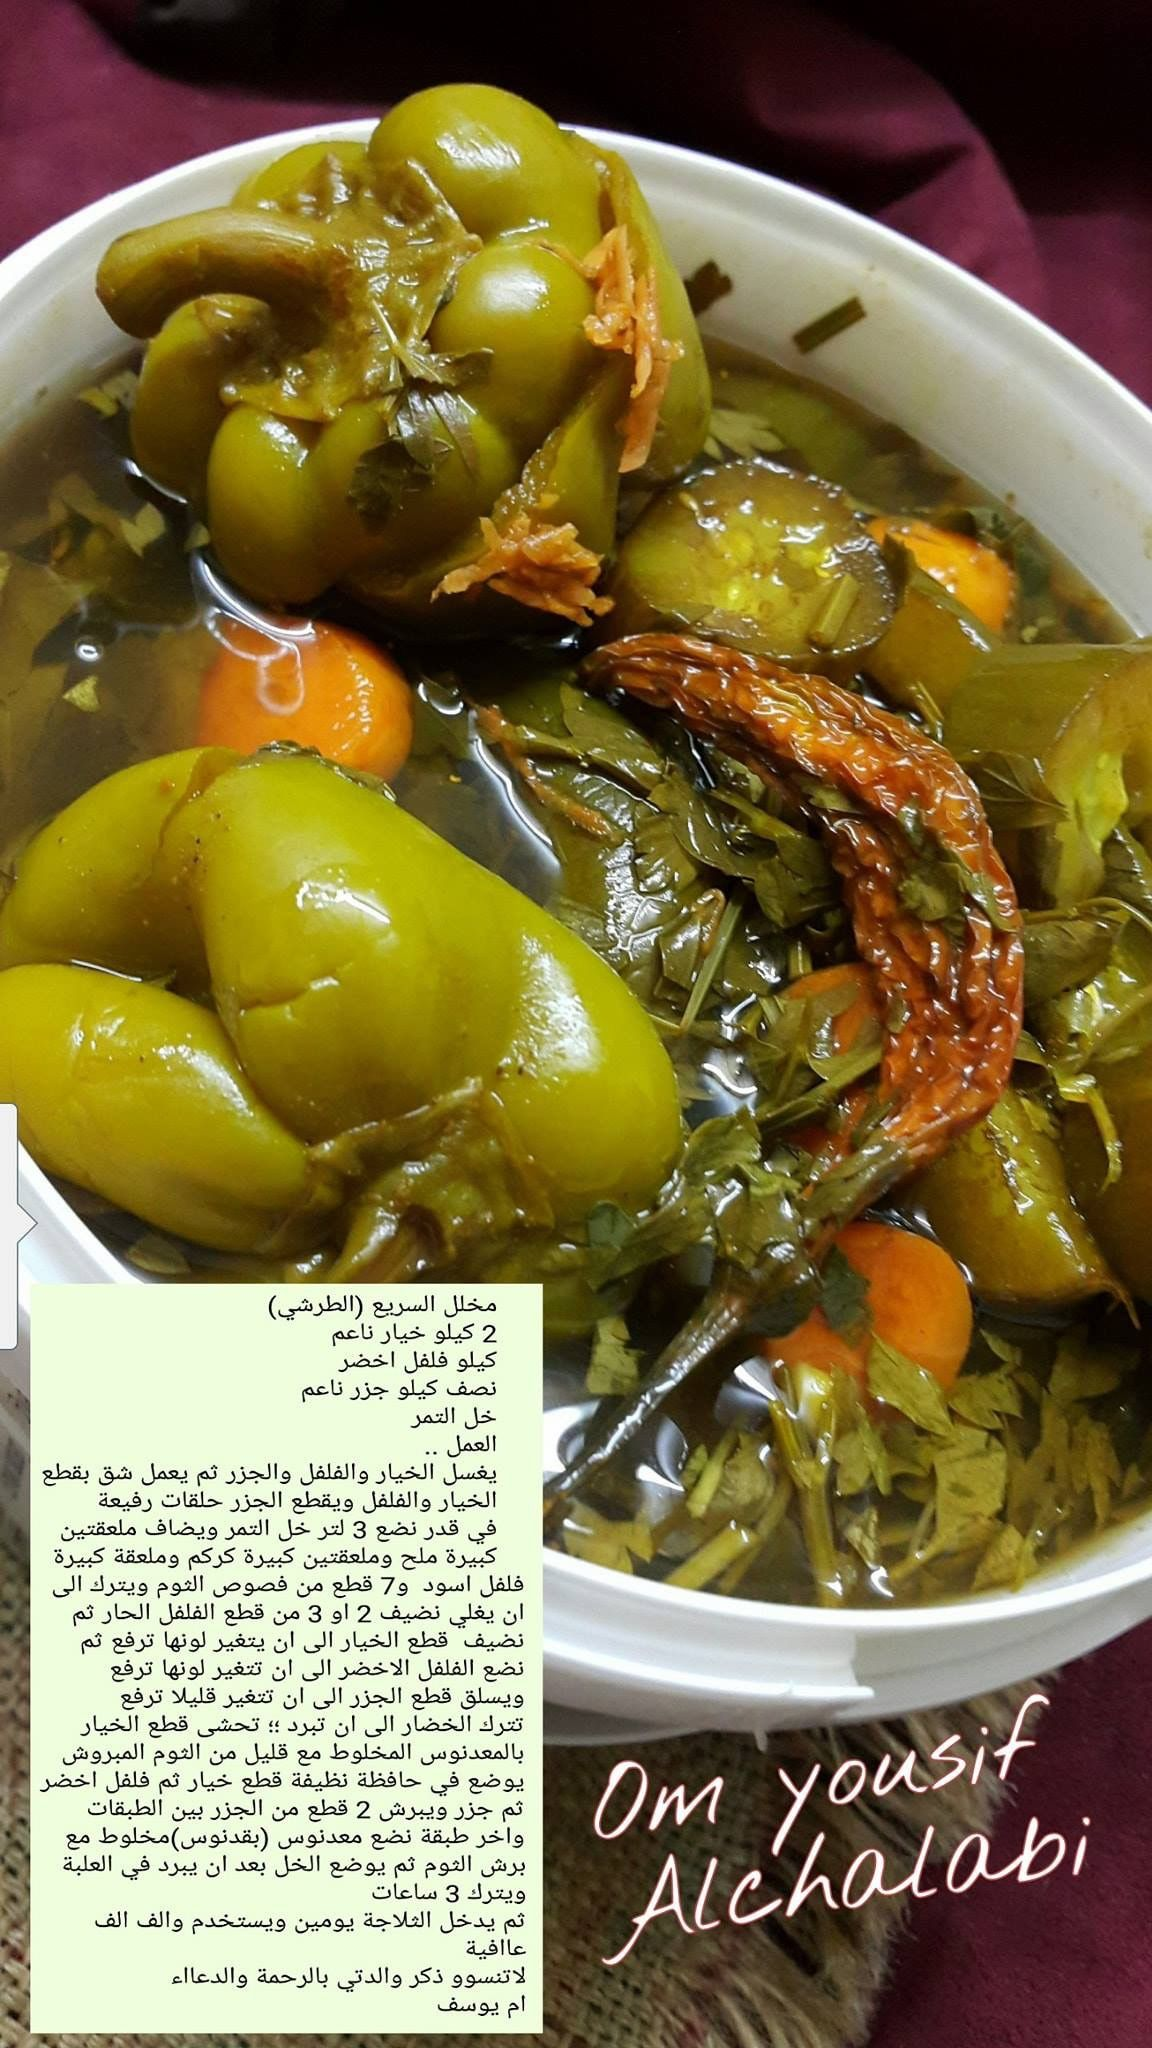 مخلل سريع Appetizer Recipes Cooking Recipes Middle East Recipes